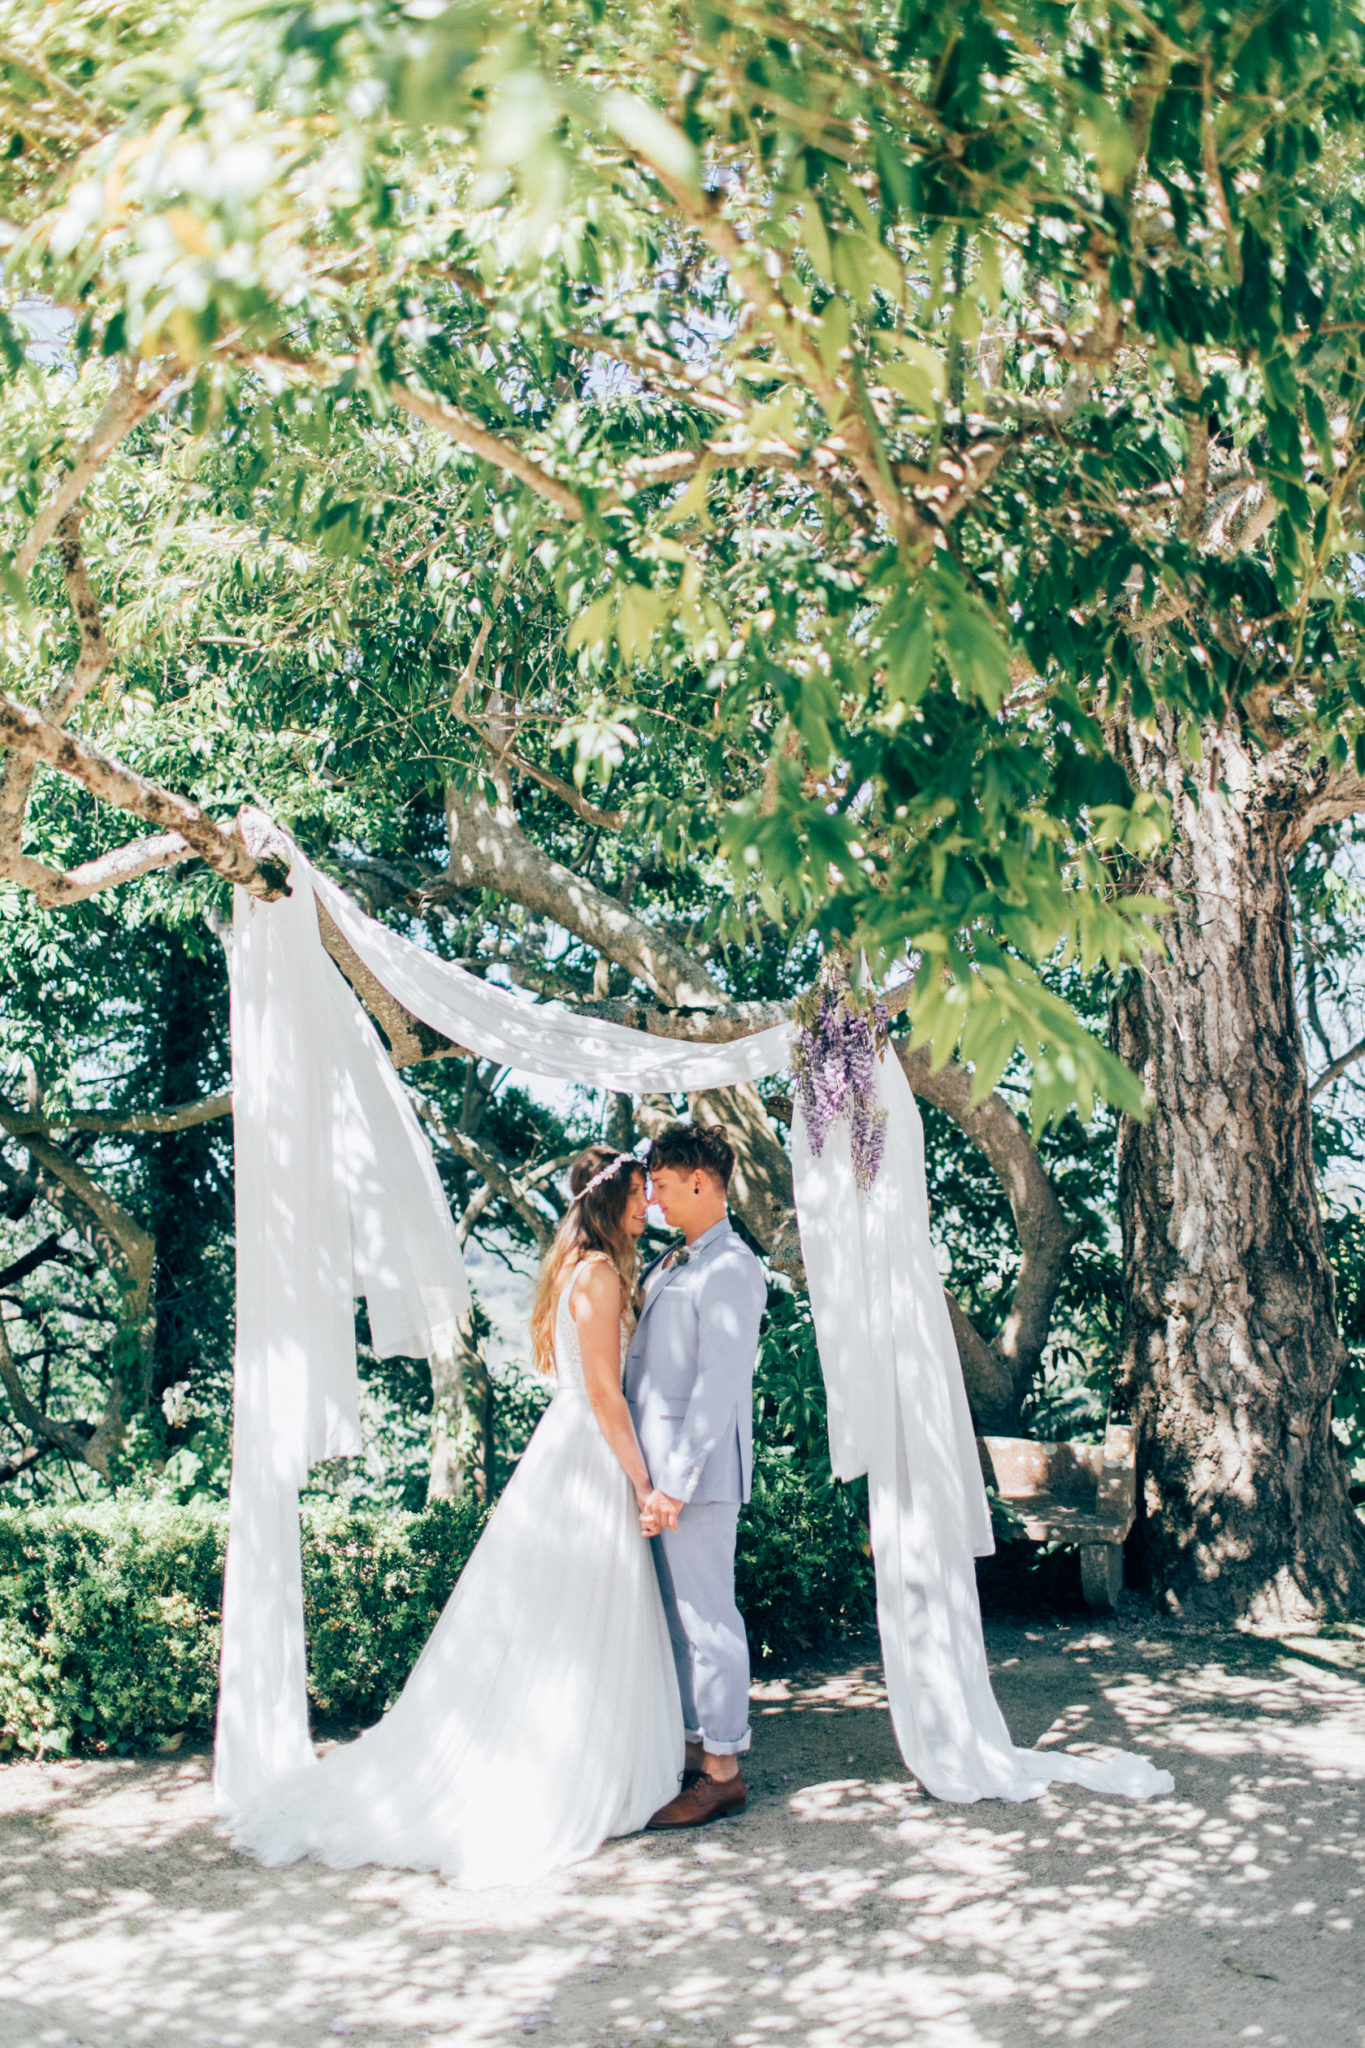 How to plan an elopement: 10 Dos and Don'ts | Magnolias on Silk